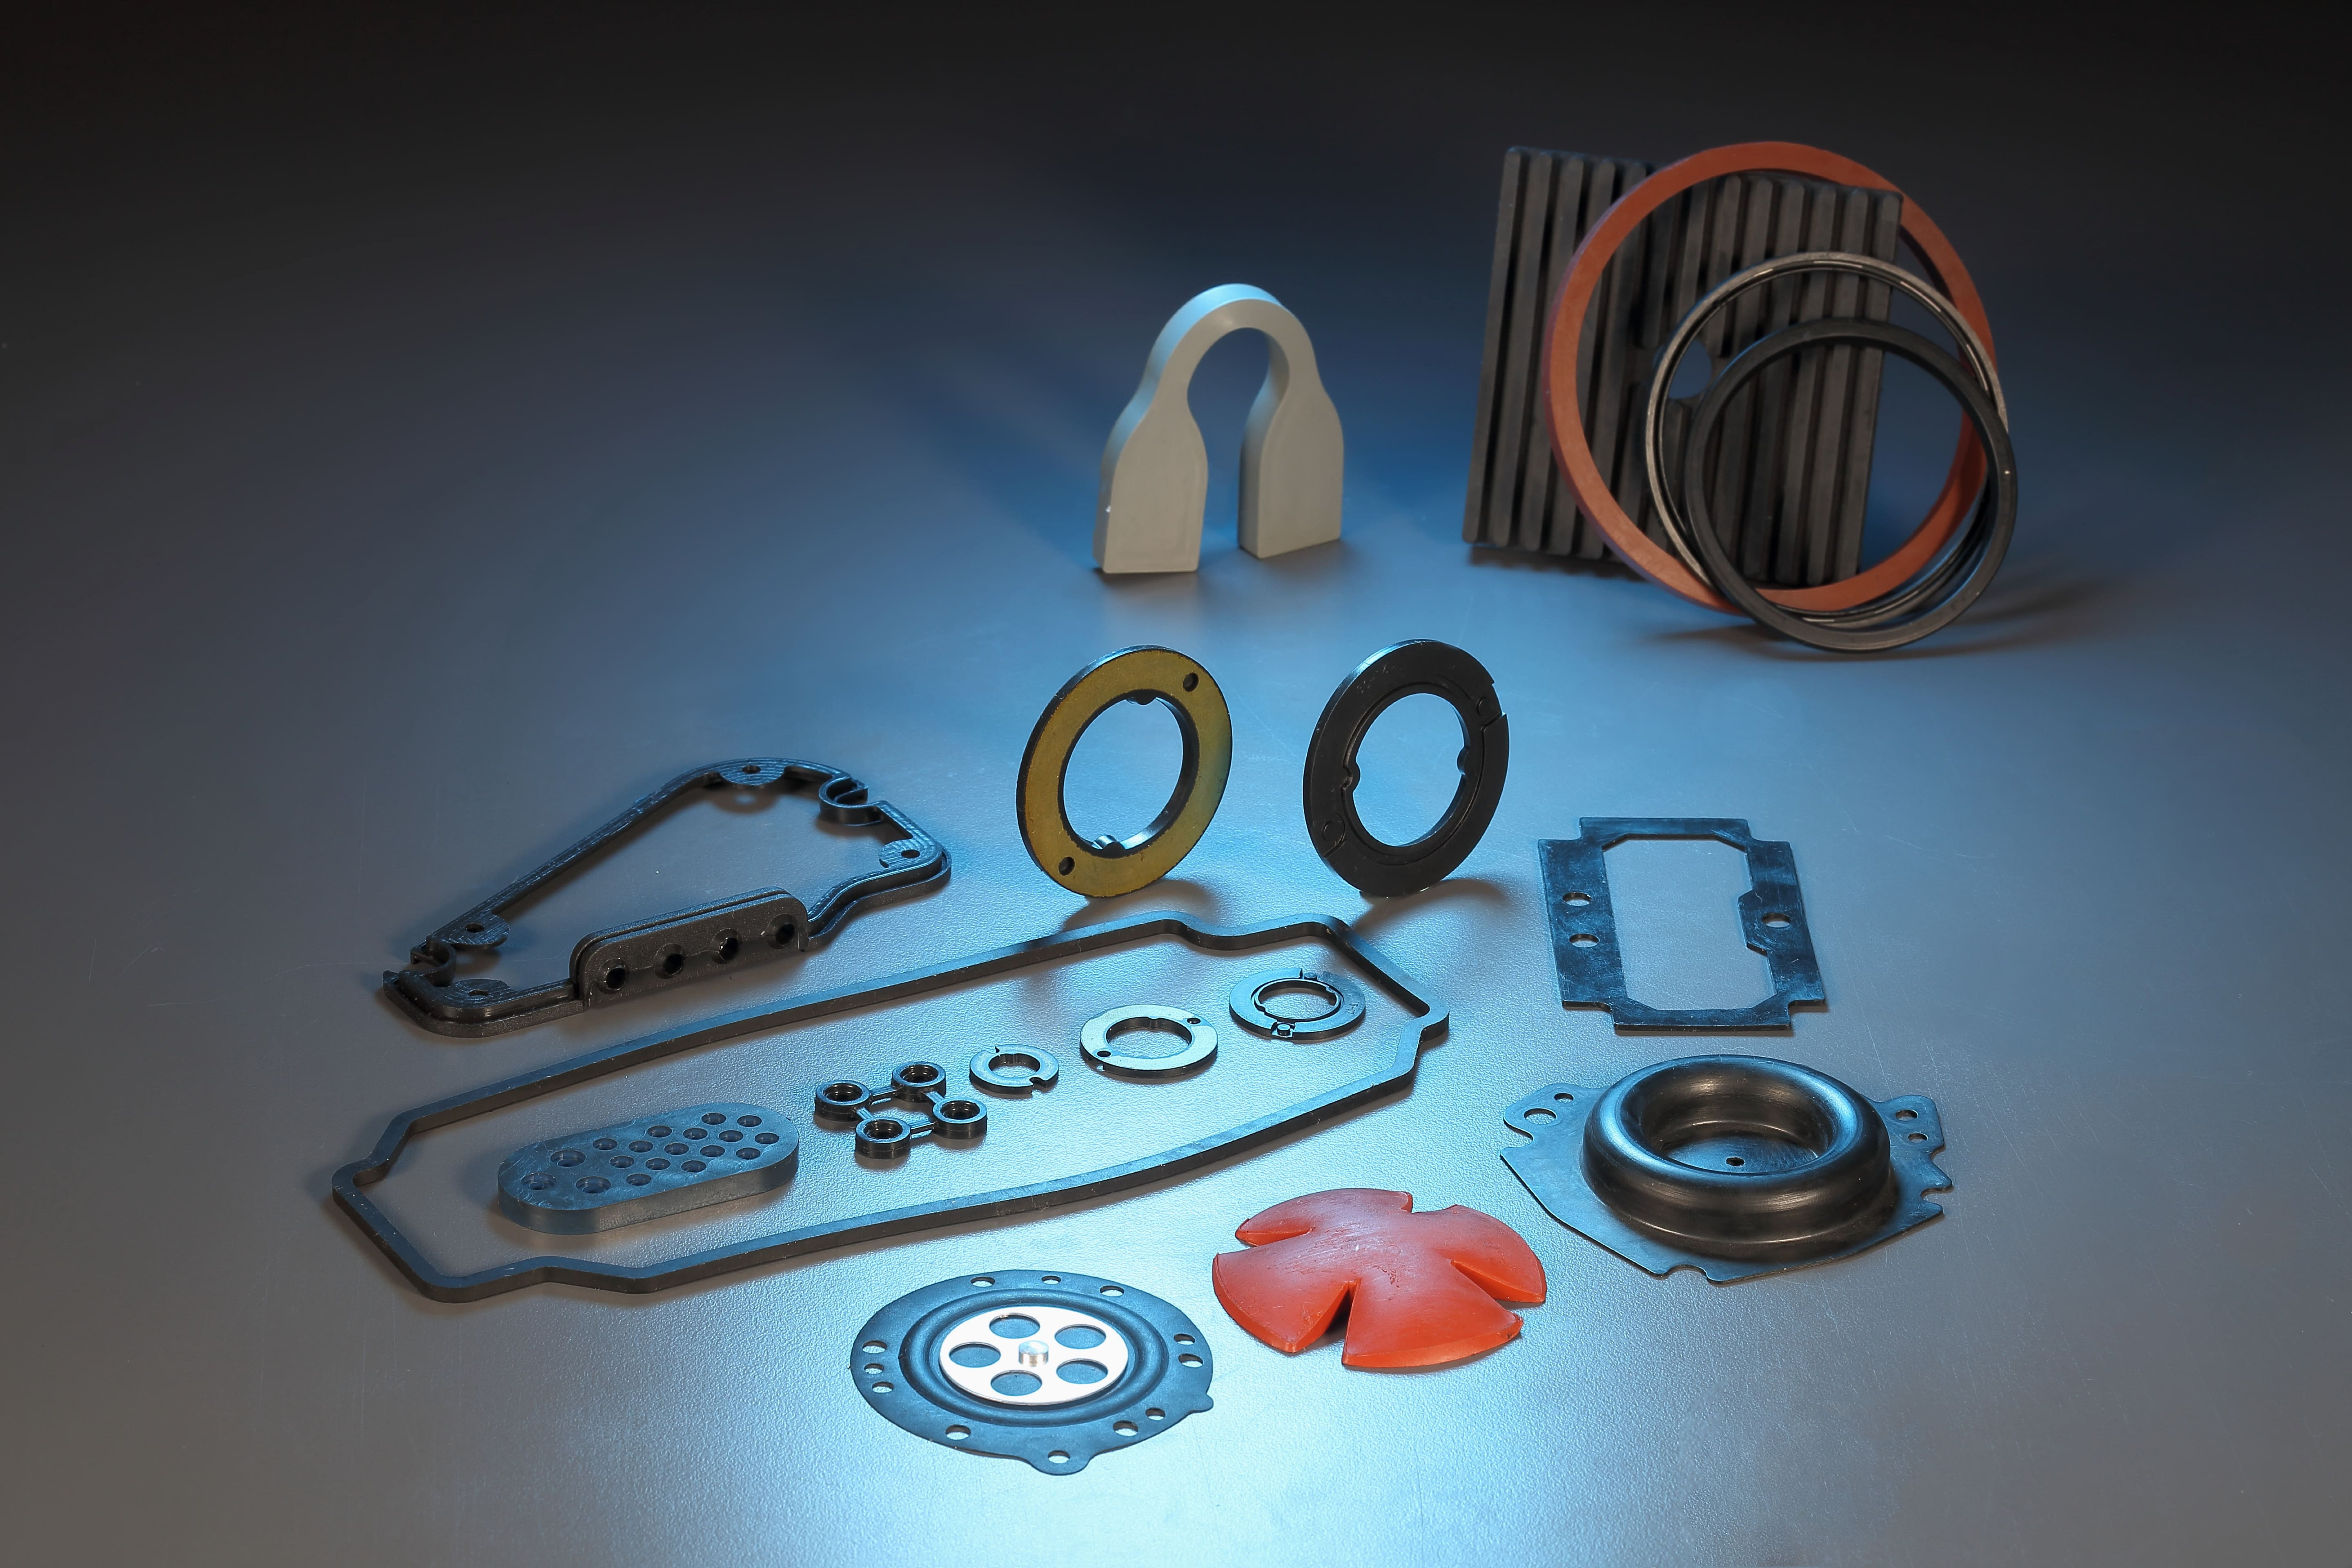 Automobile Spacer for Vehicle Fastener made by Yee Ming Ying Co., LTD. 昱銘穎有限公司 - MatchSupplier.com